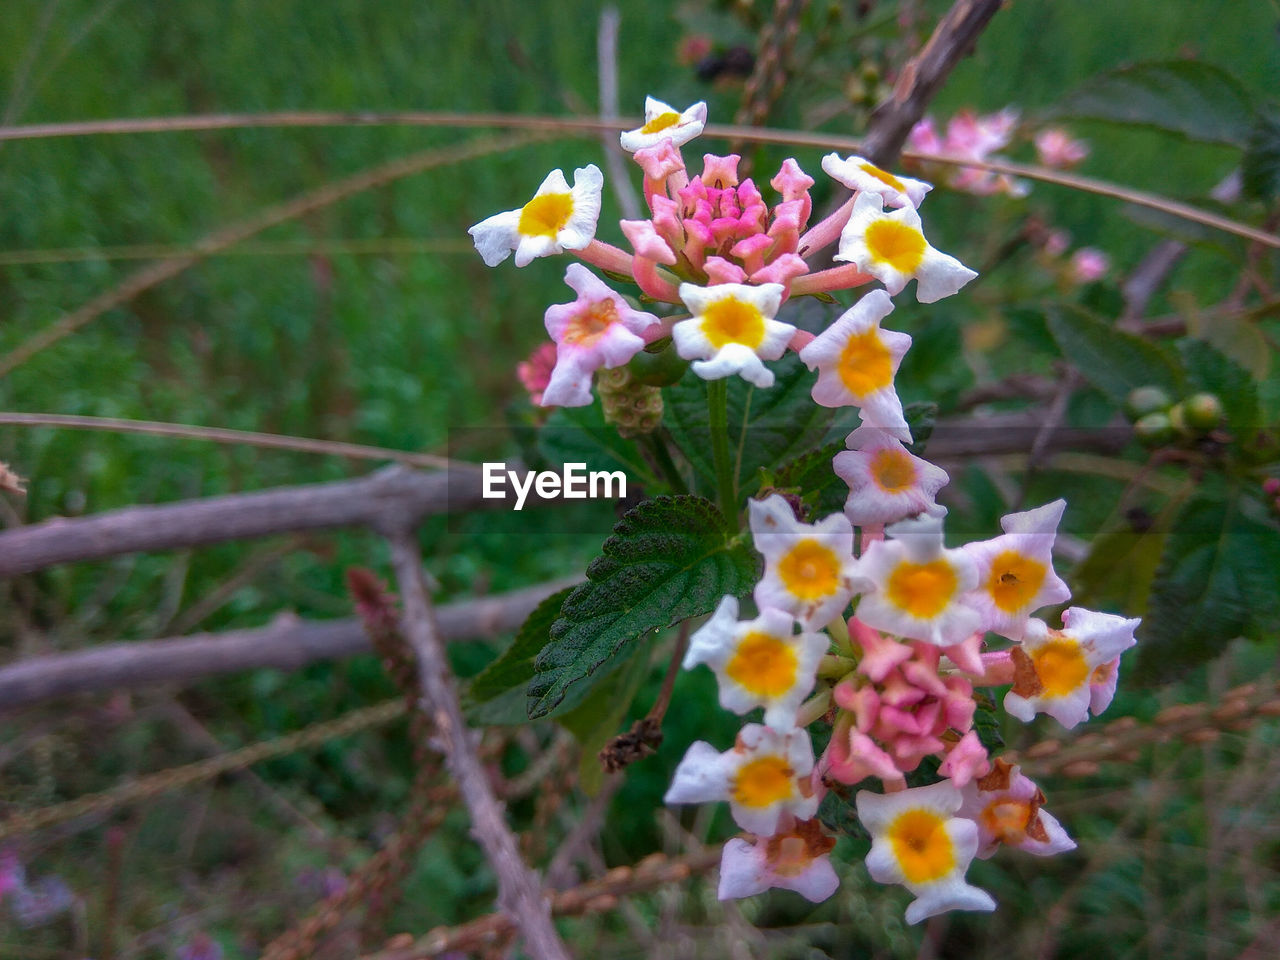 flowering plant, flower, plant, fragility, vulnerability, freshness, growth, beauty in nature, petal, flower head, nature, close-up, inflorescence, day, no people, selective focus, focus on foreground, outdoors, lantana, botany